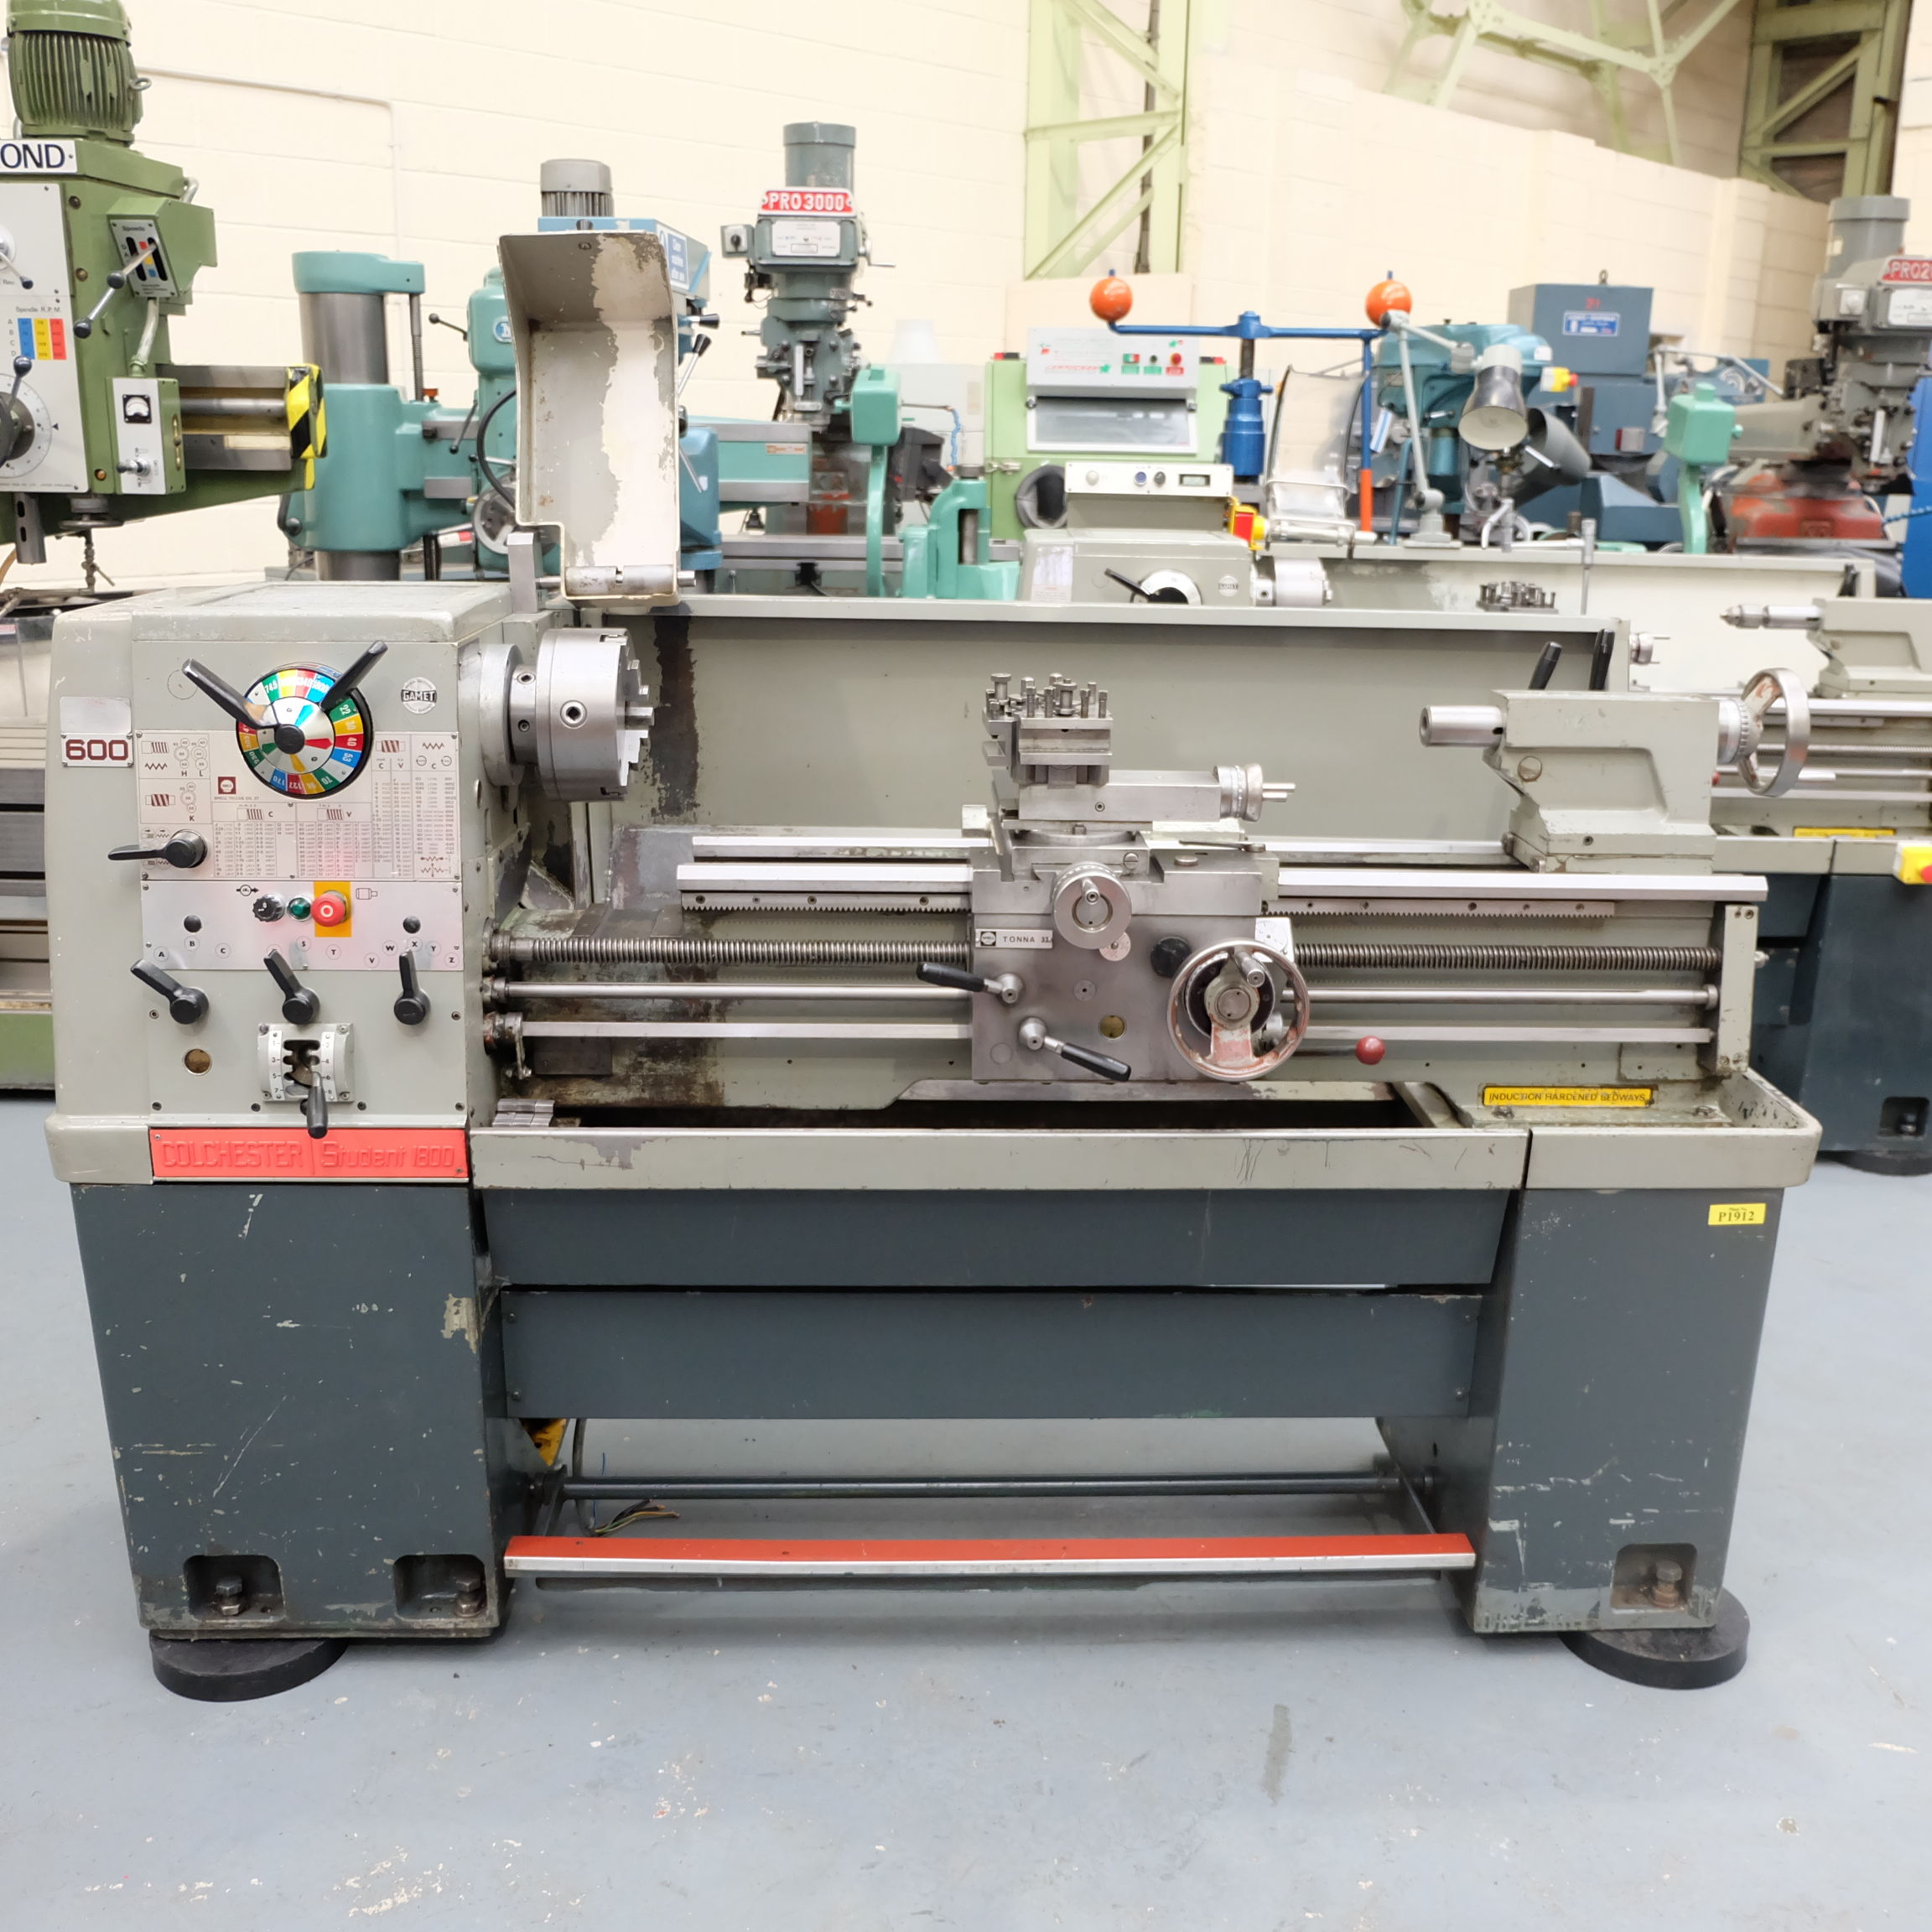 Colchester Student Gap Bed Centre Lathe.